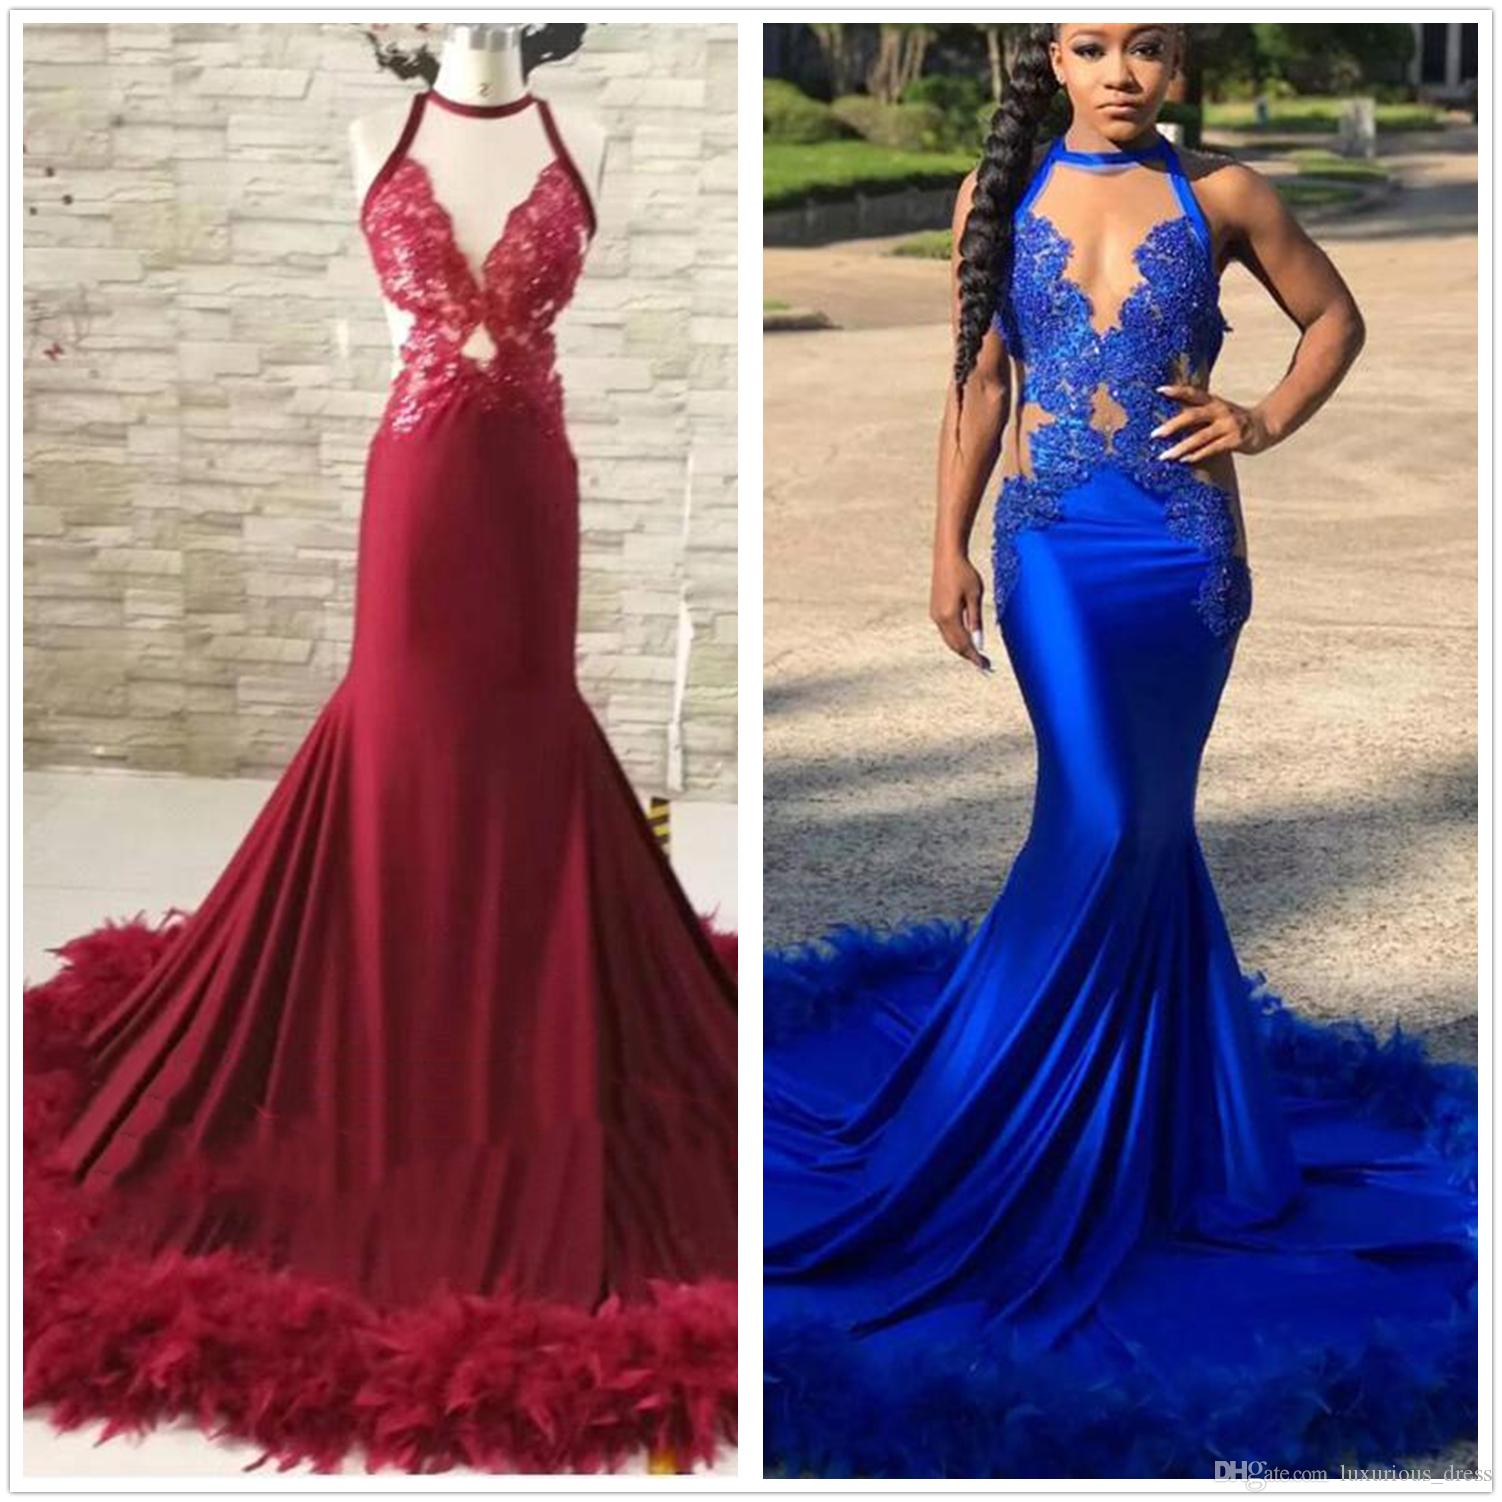 Royal Blue Halter Fitted Long Feather Prom Dress 2019 Luxury African Women Evening Gown paolo sebastian prom dresses robe de soiree